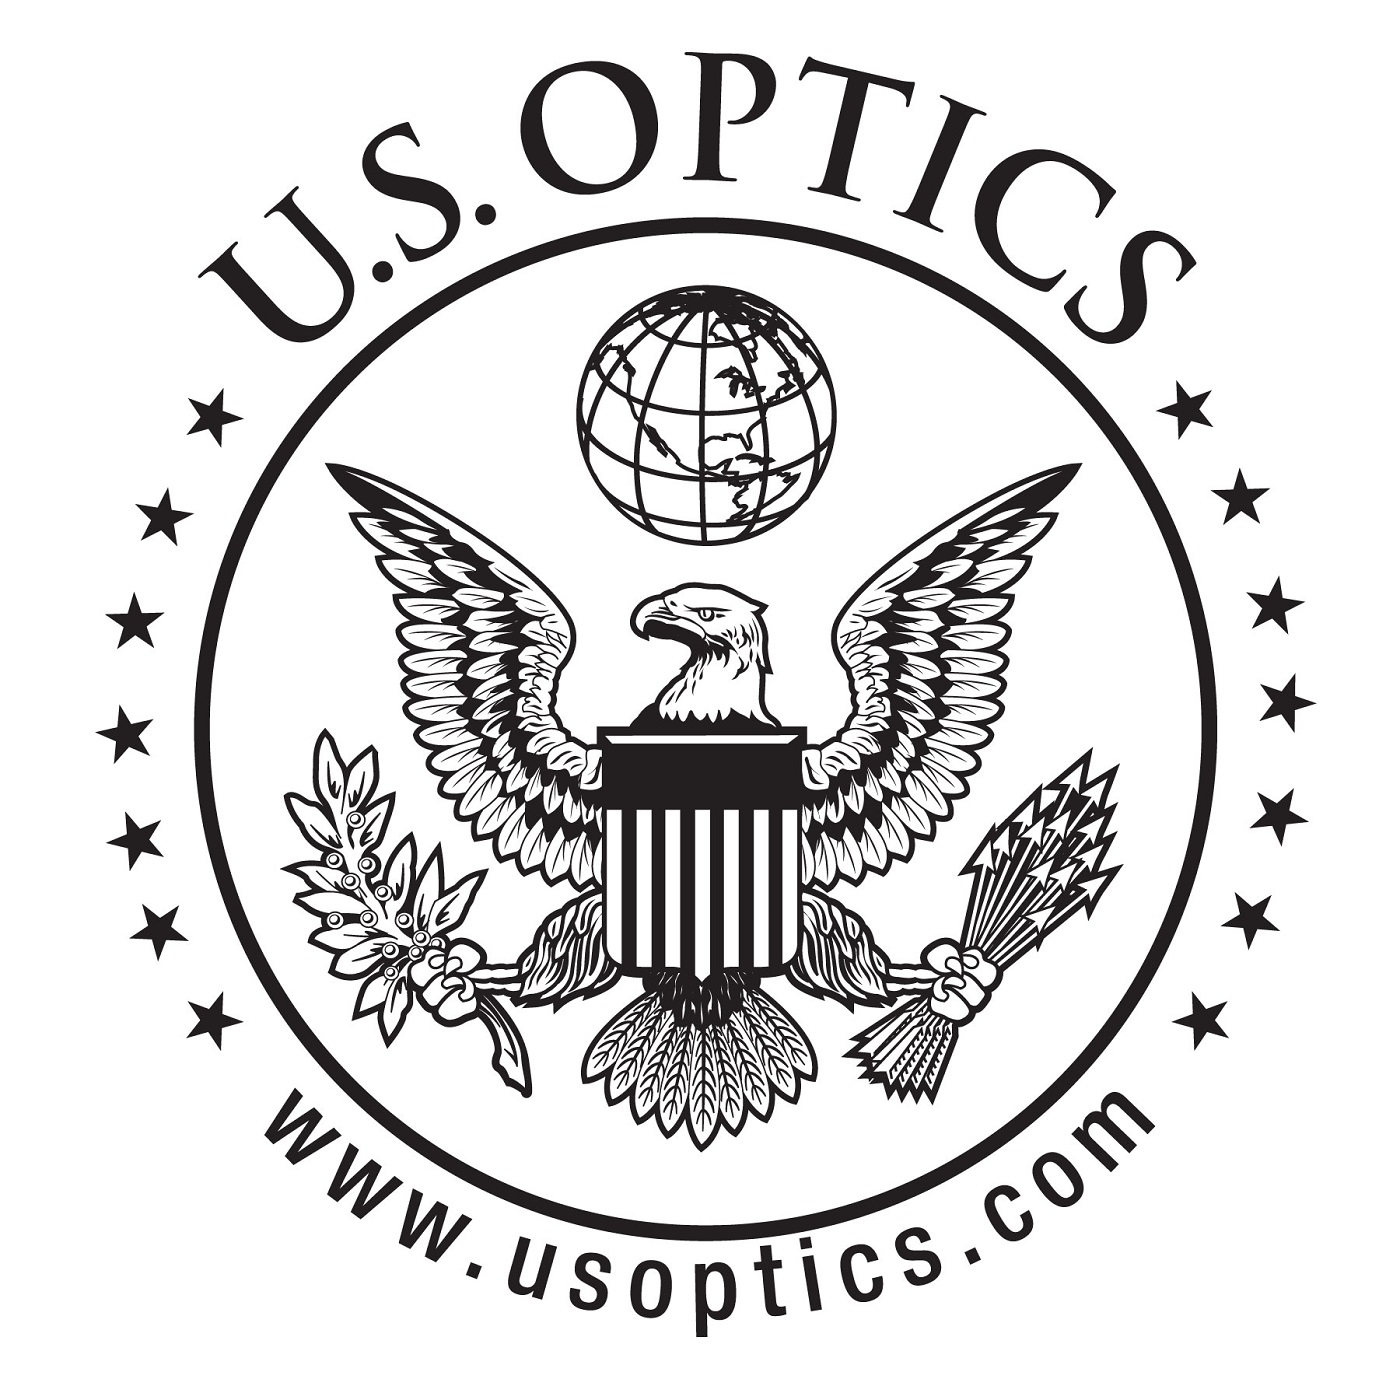 U S Optics Inc Announces New Director For U S Optics